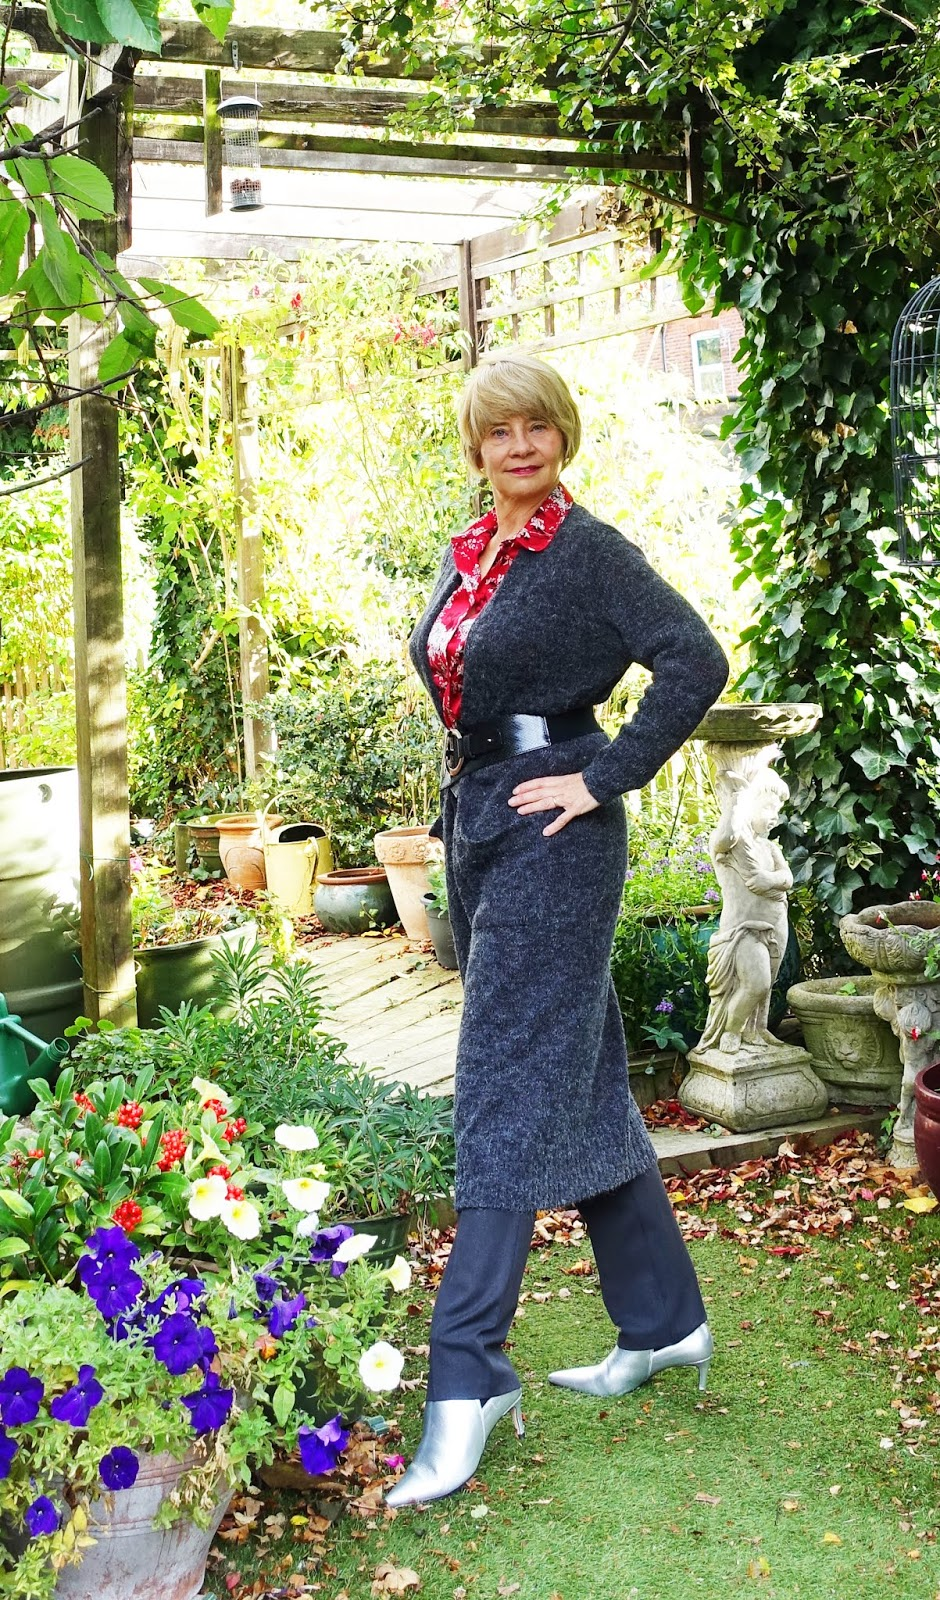 Over 45s blog Is This Mutton? with one of three looks for a red and white floral blouse